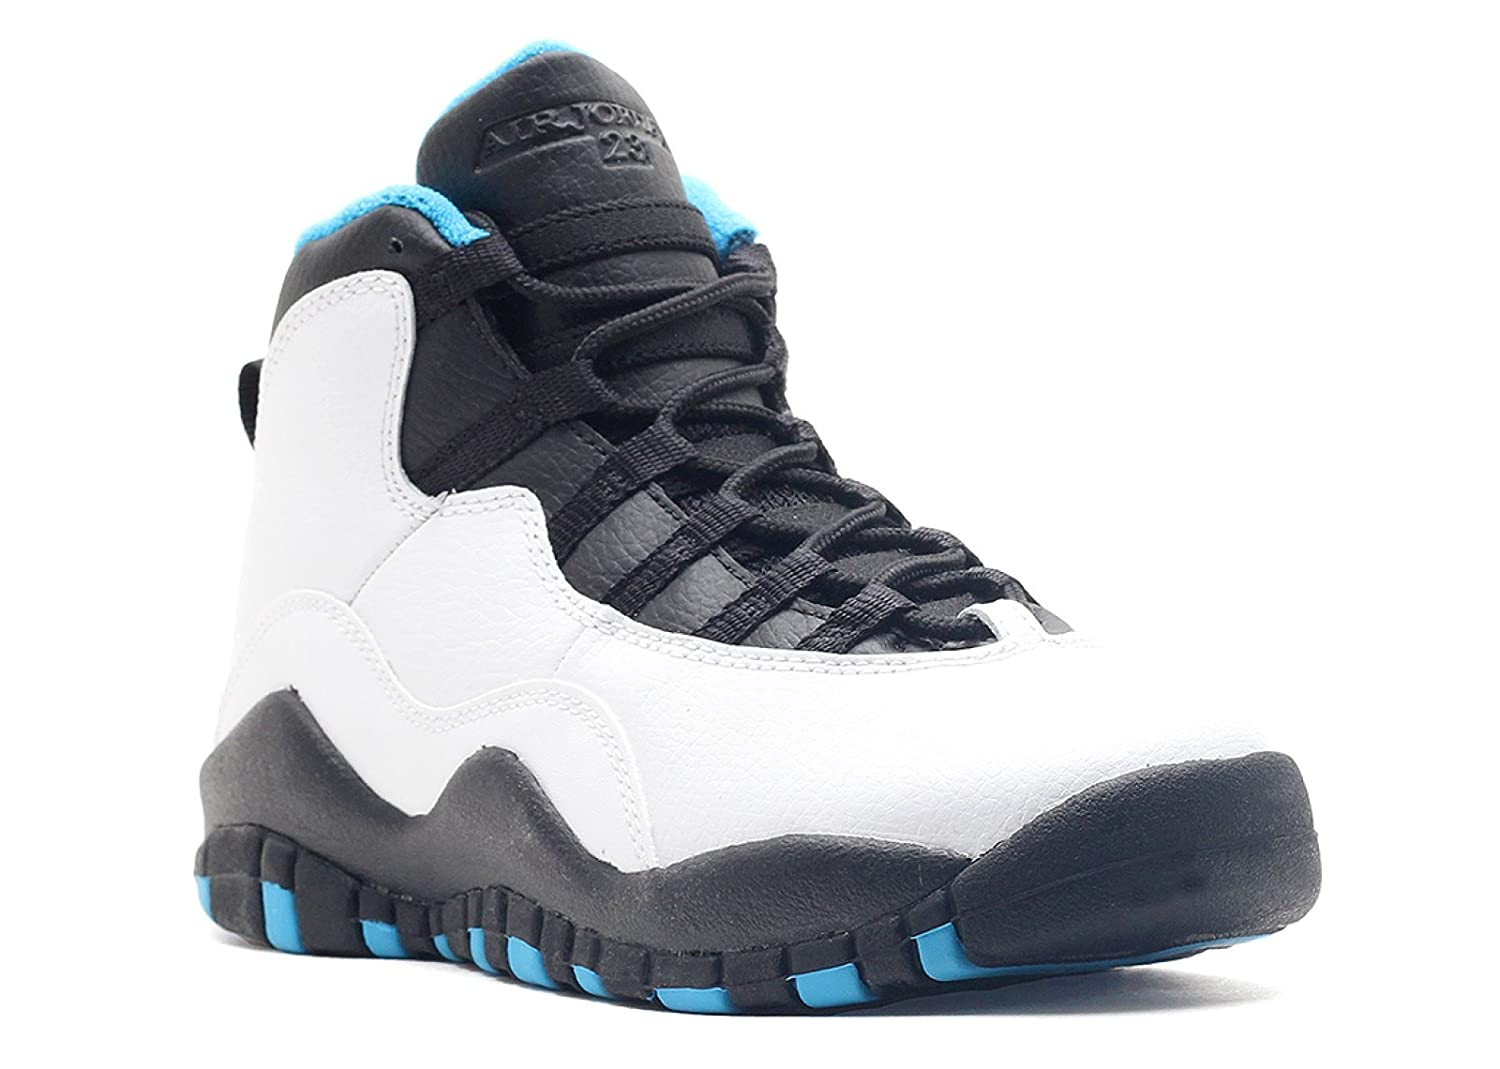 the latest 15716 af45c Amazon.com   Nike Air Jordan 10 Retro Kids Grade School White Black Dark  Powder Blue 310806-106 (SIZE  5.5Y)   Shoes